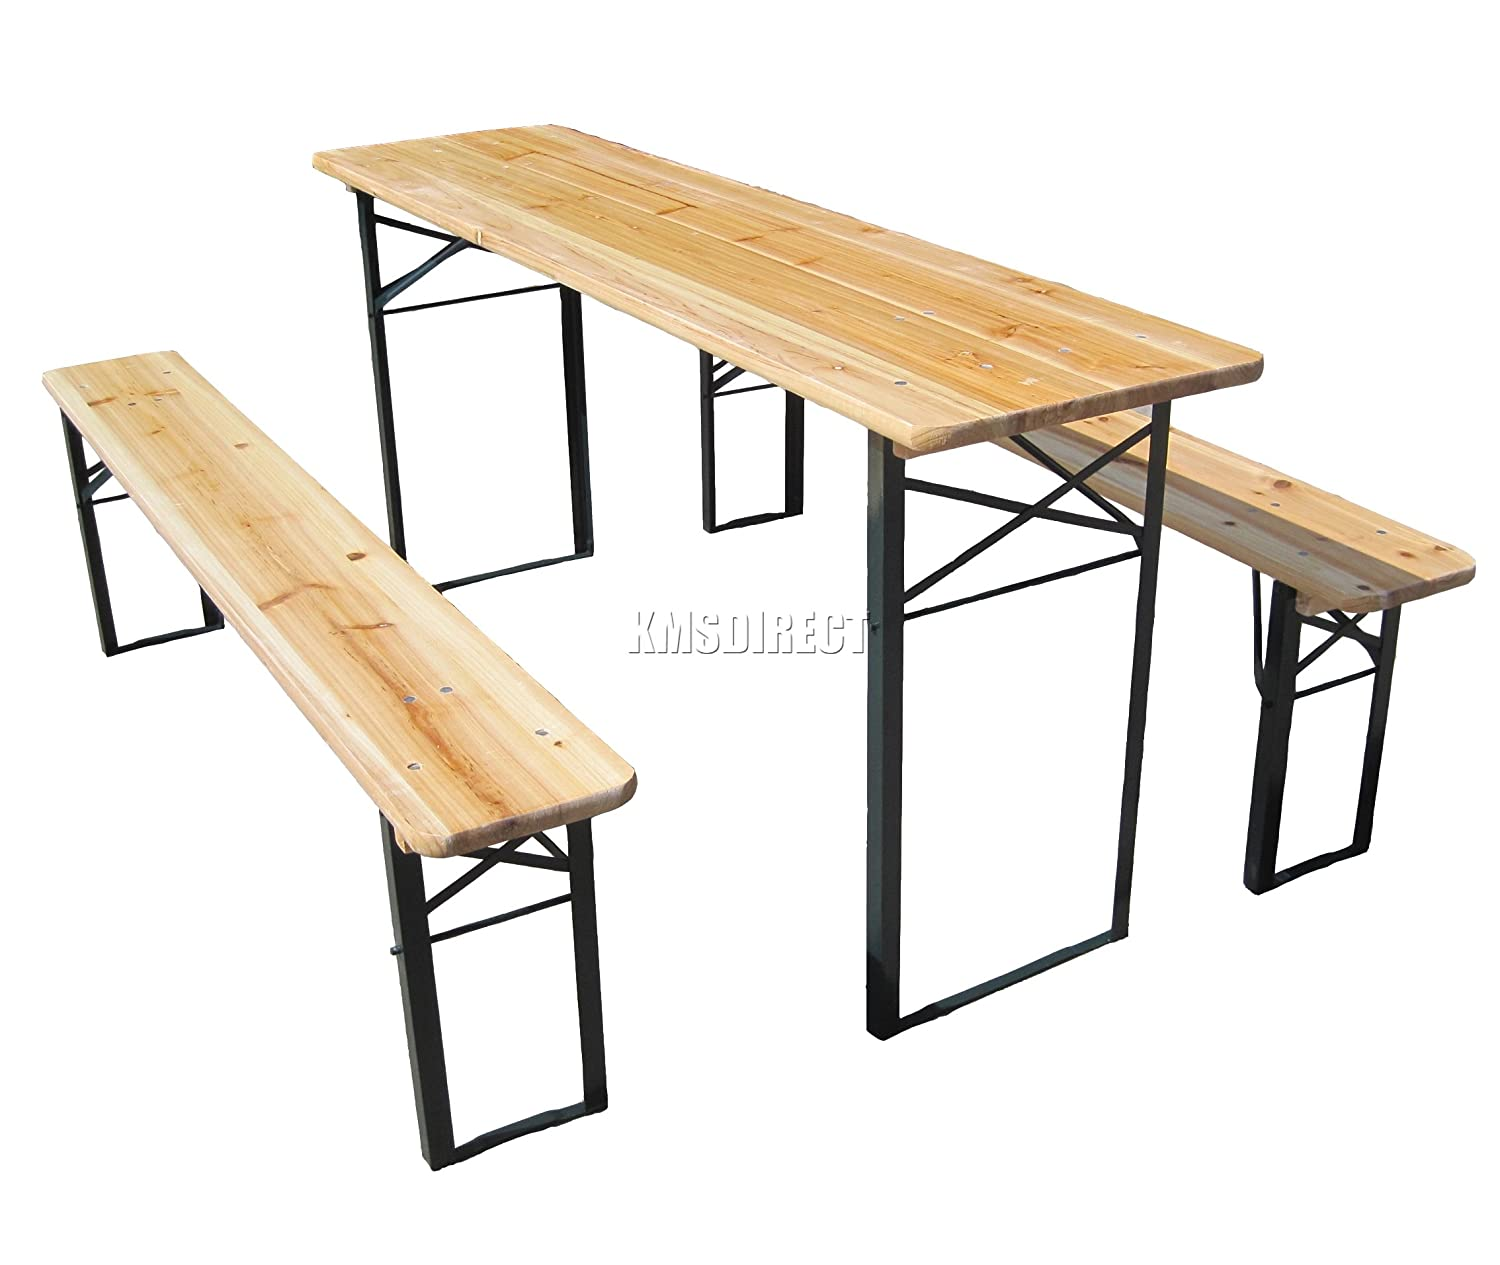 FoxHunter Outdoor Wood Wooden Vingtage Folding Beer Table Bench Set Trestle  Party Picnic Pub Garden Furniture Steel Leg: Amazon.co.uk: Garden U0026 Outdoors